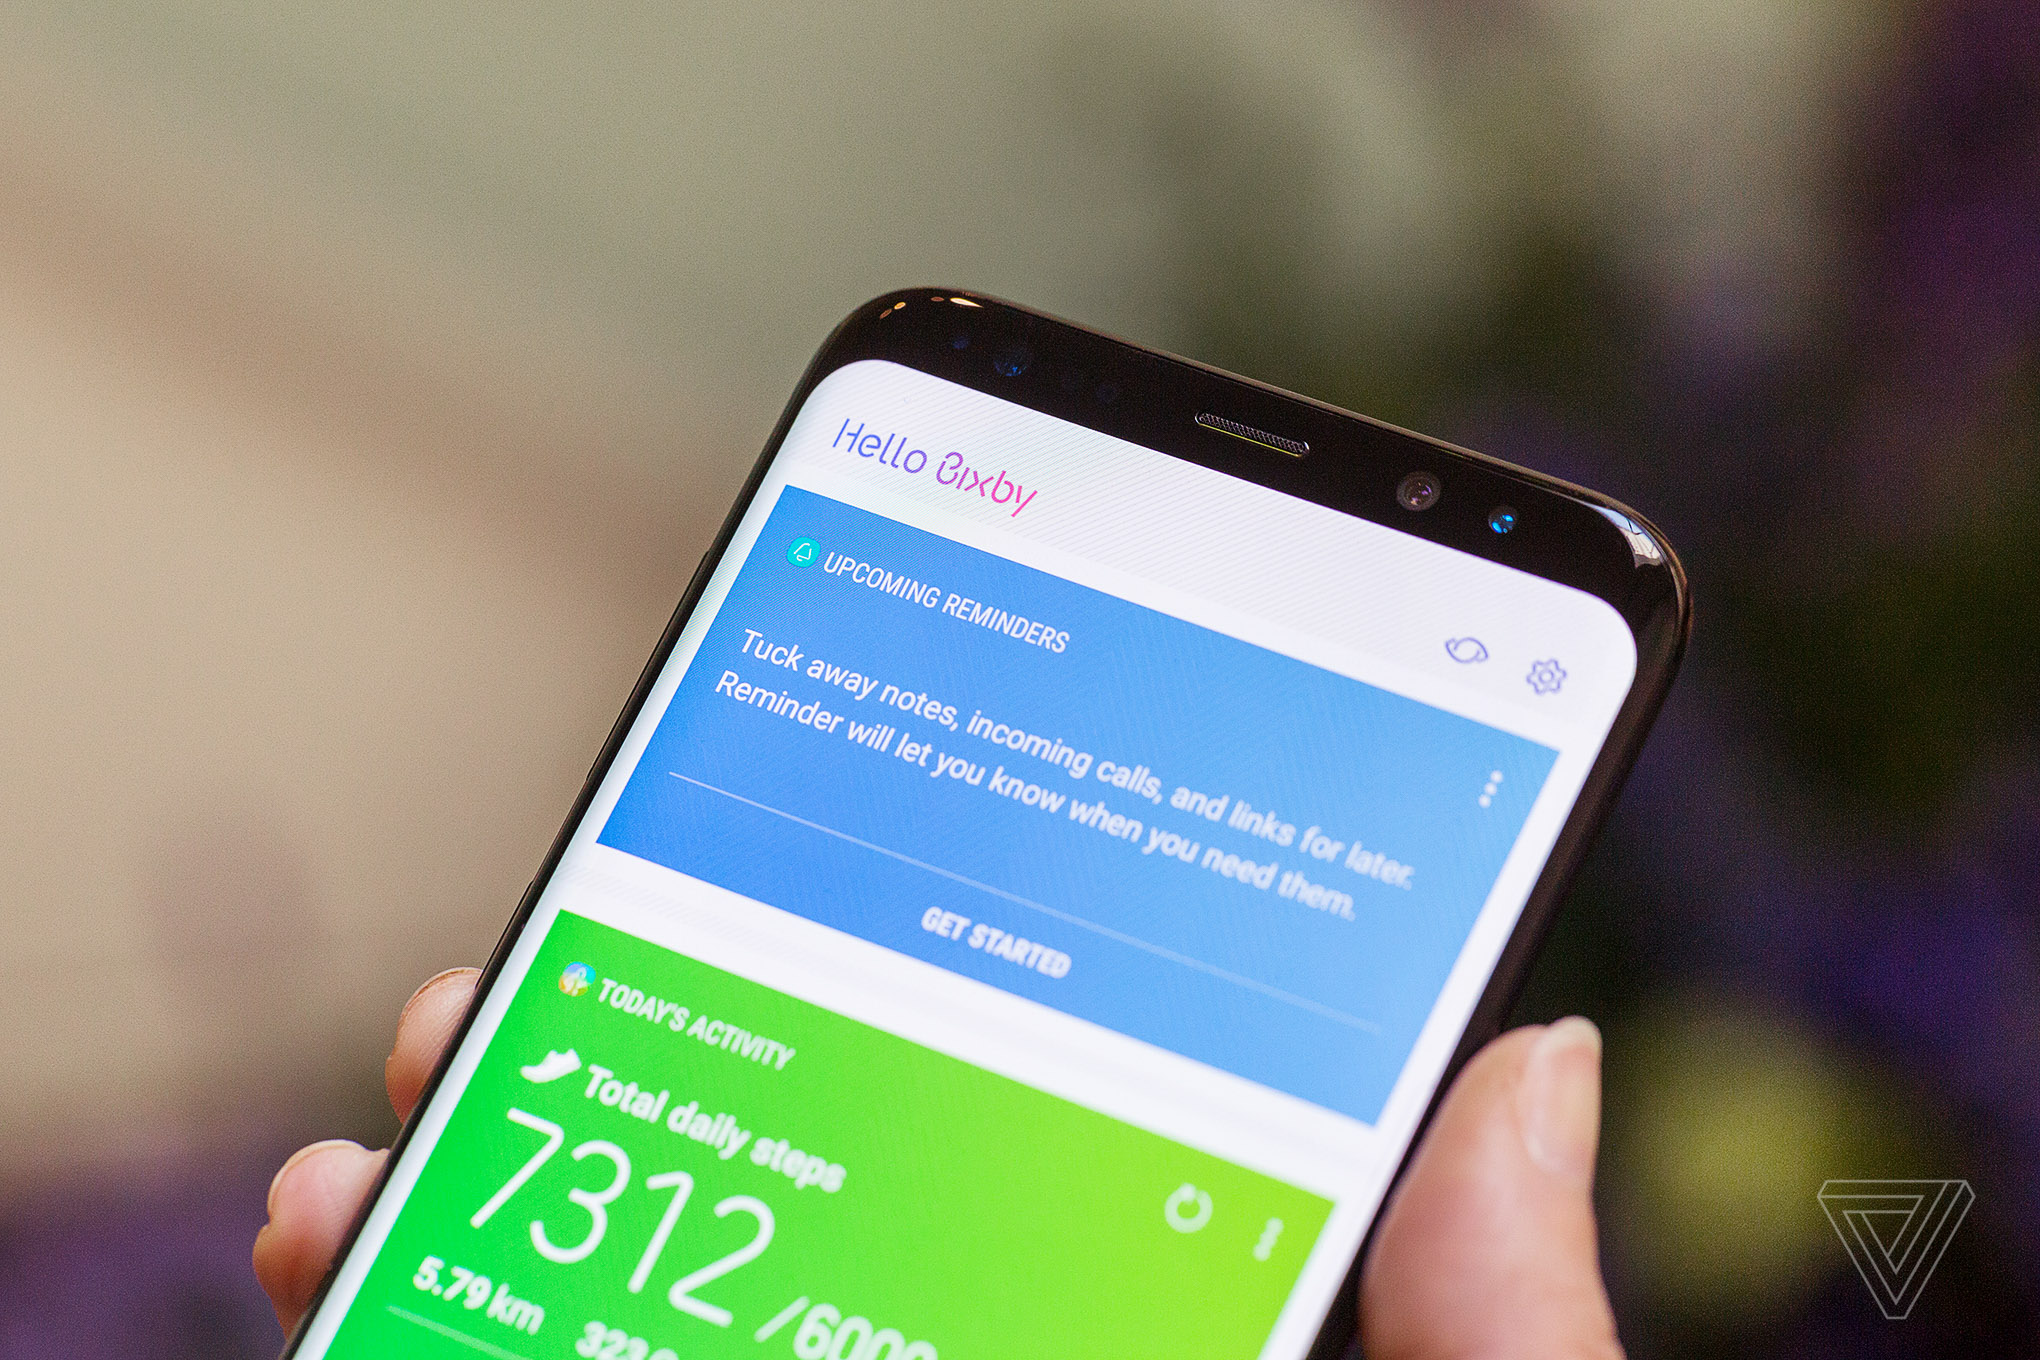 Samsung's Bixby is even less useful on the Verizon Galaxy S8 at launch